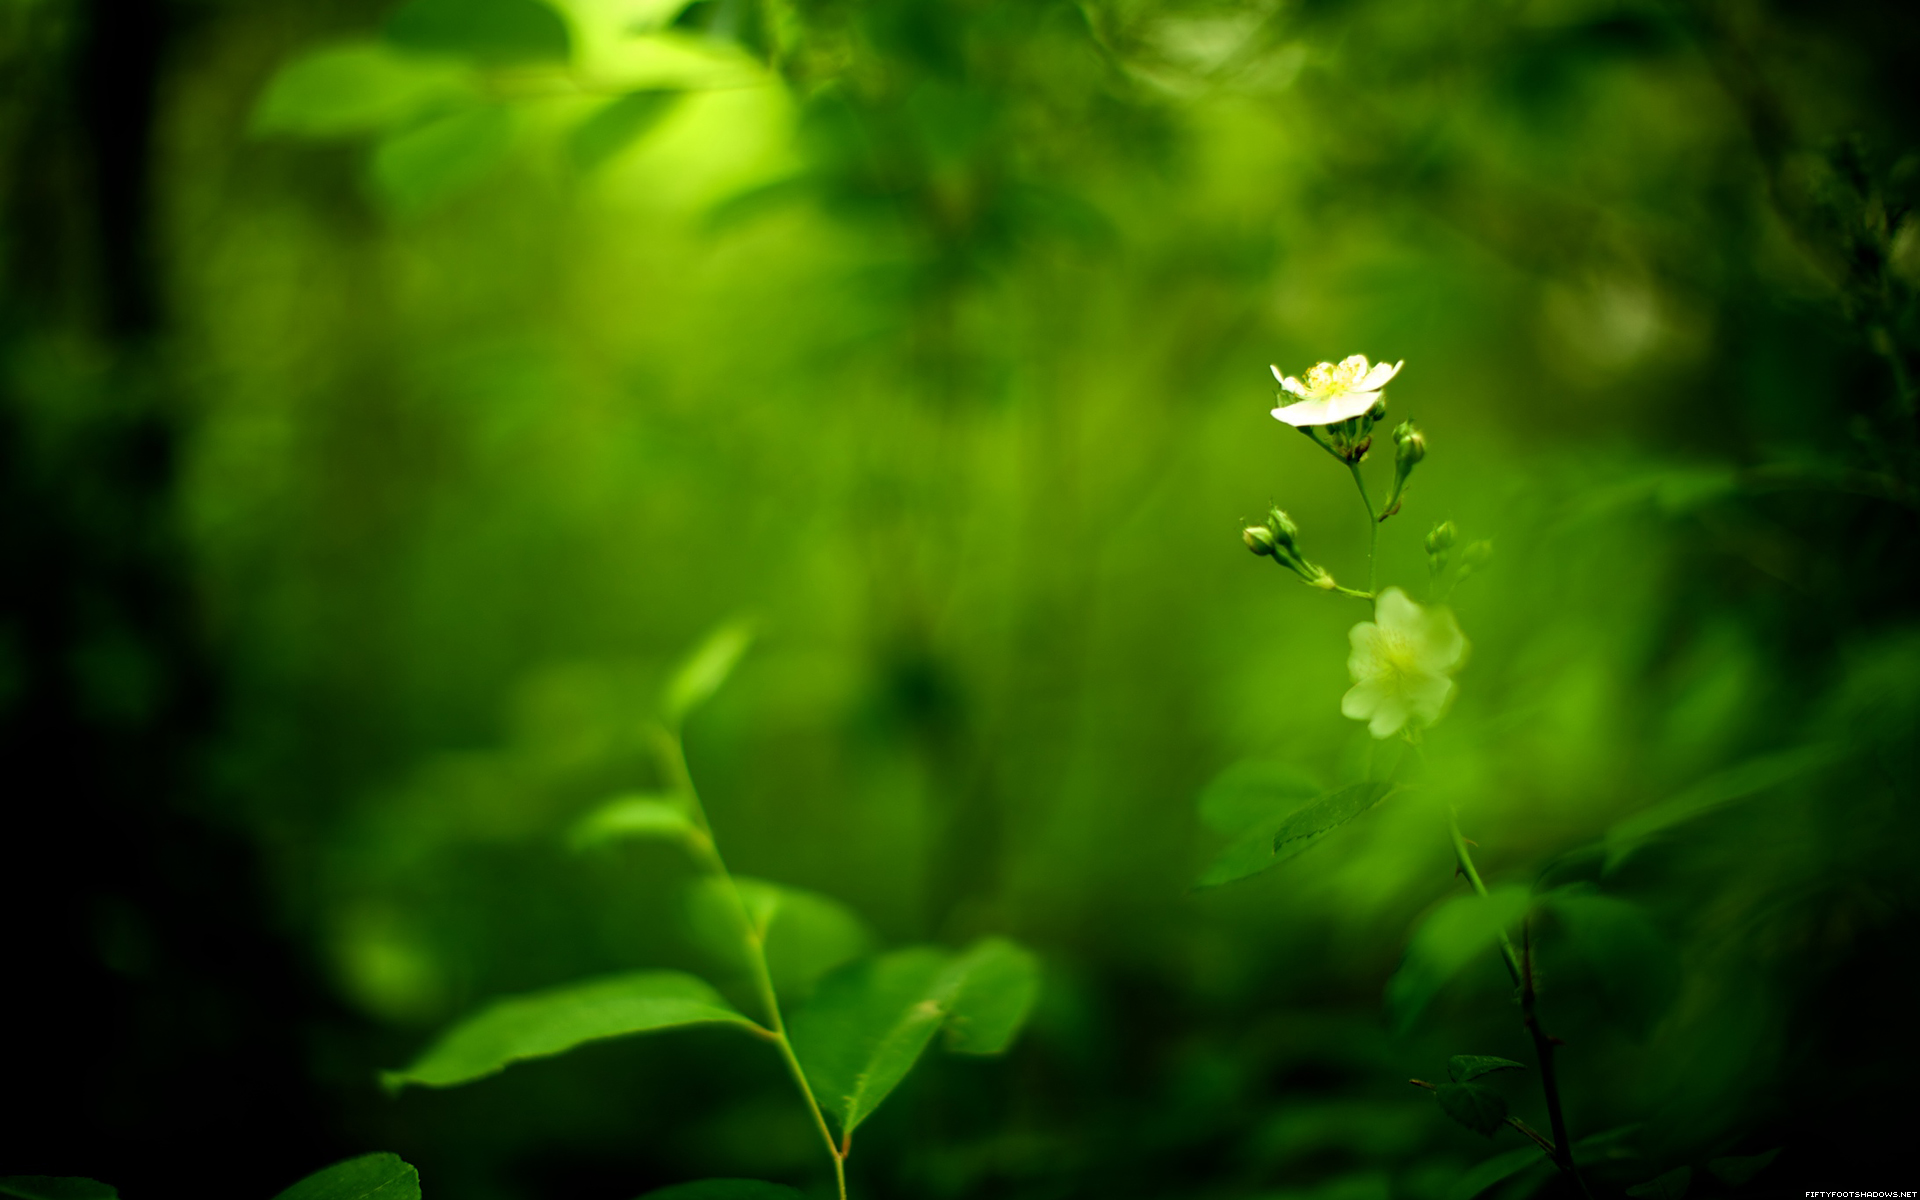 Green Nature Flowers Wallpaper 1920x1200